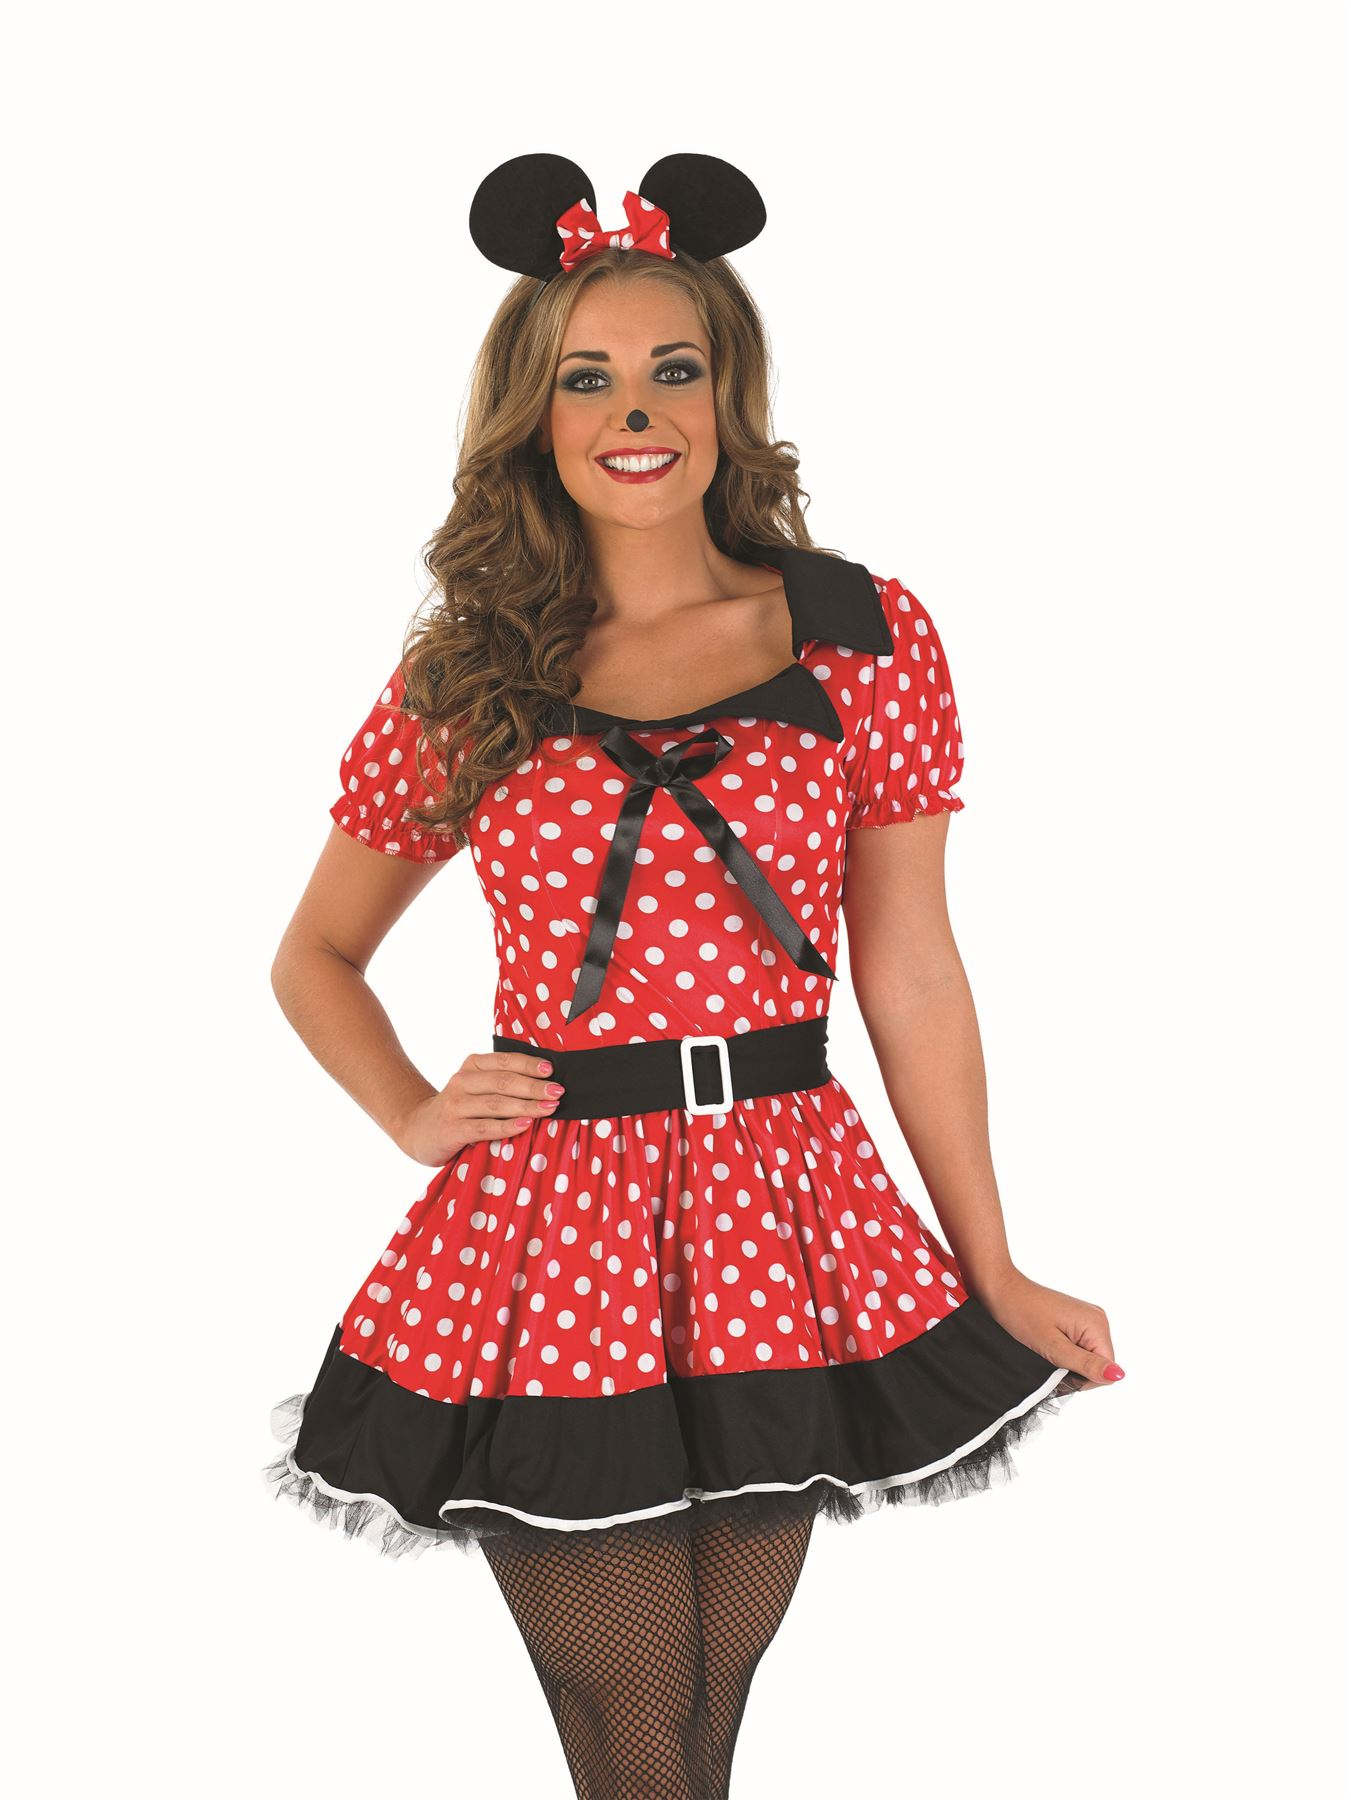 damen erwachsene missy minnie mickey mouse disney maskenkost m ohren s sexy ebay. Black Bedroom Furniture Sets. Home Design Ideas